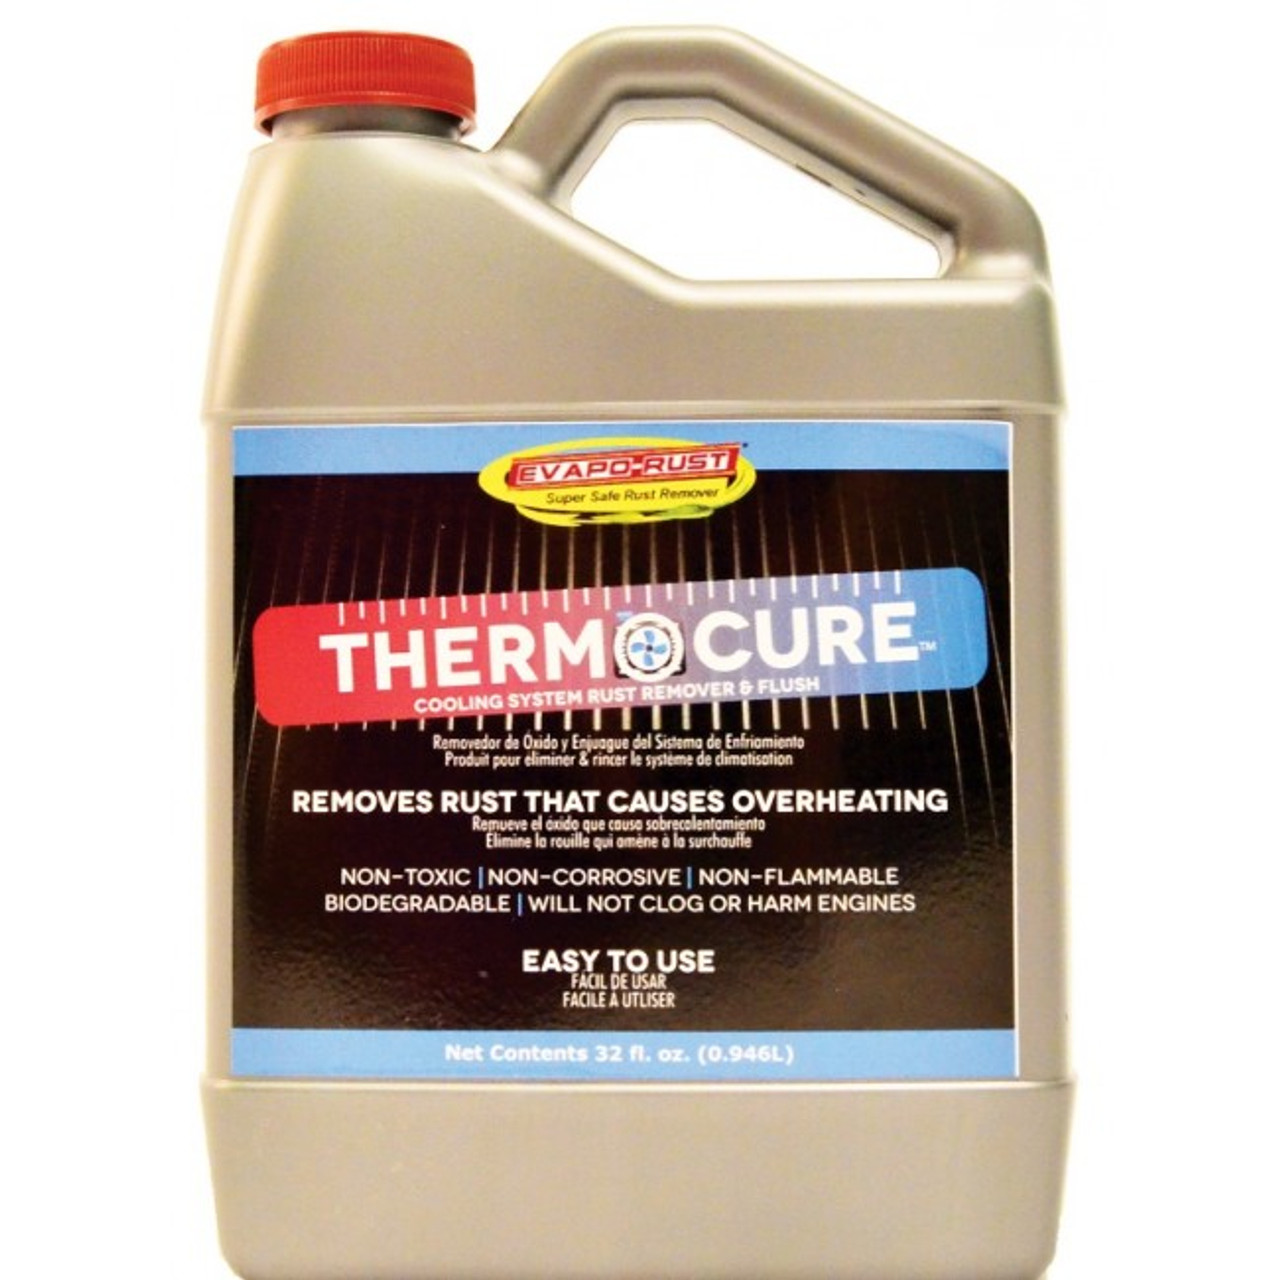 Thermocure Cooling System Rust Remover - Radiator Flush 946ml (US Quart)